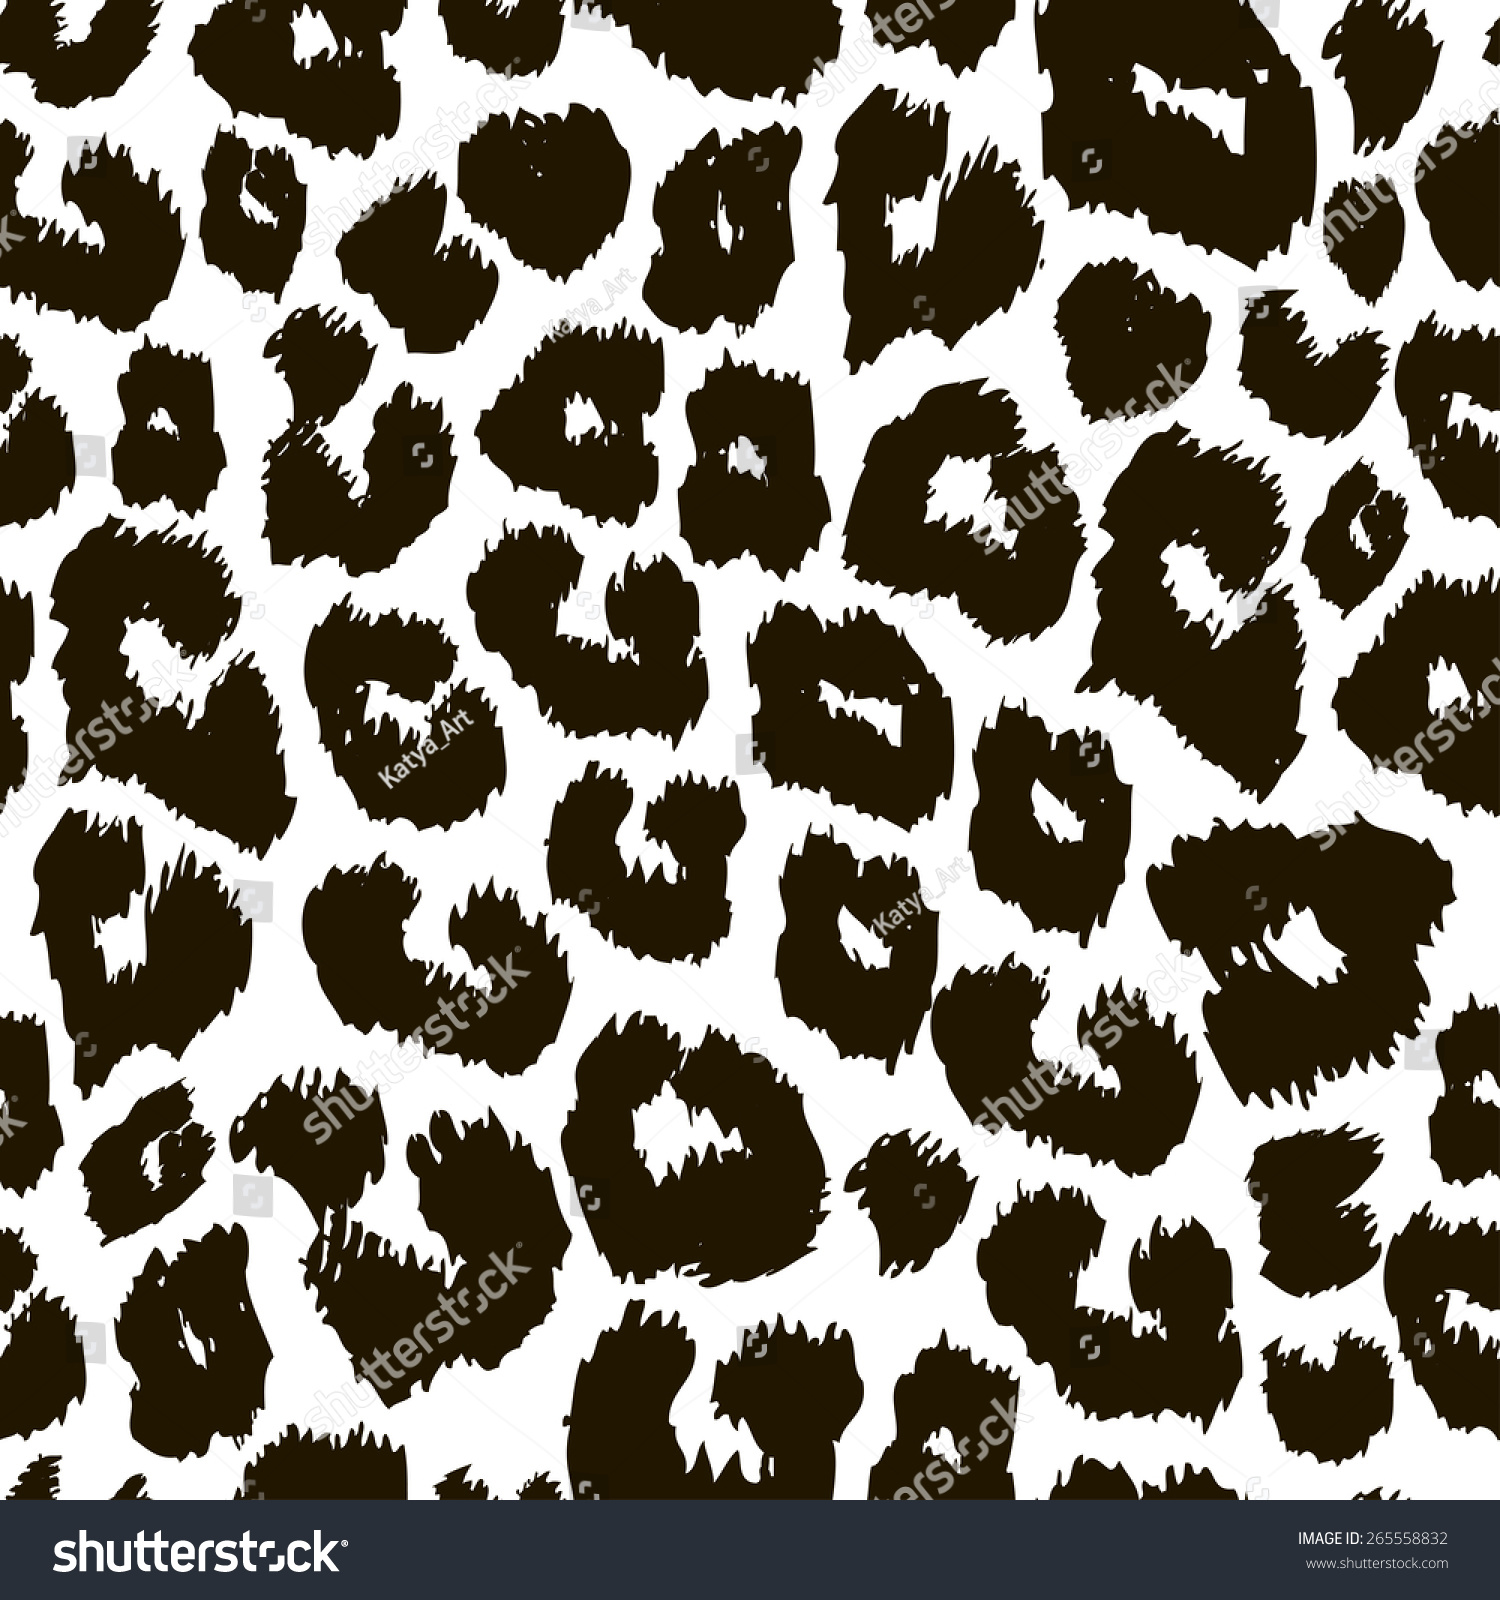 animal skin patterns seamless - photo #13